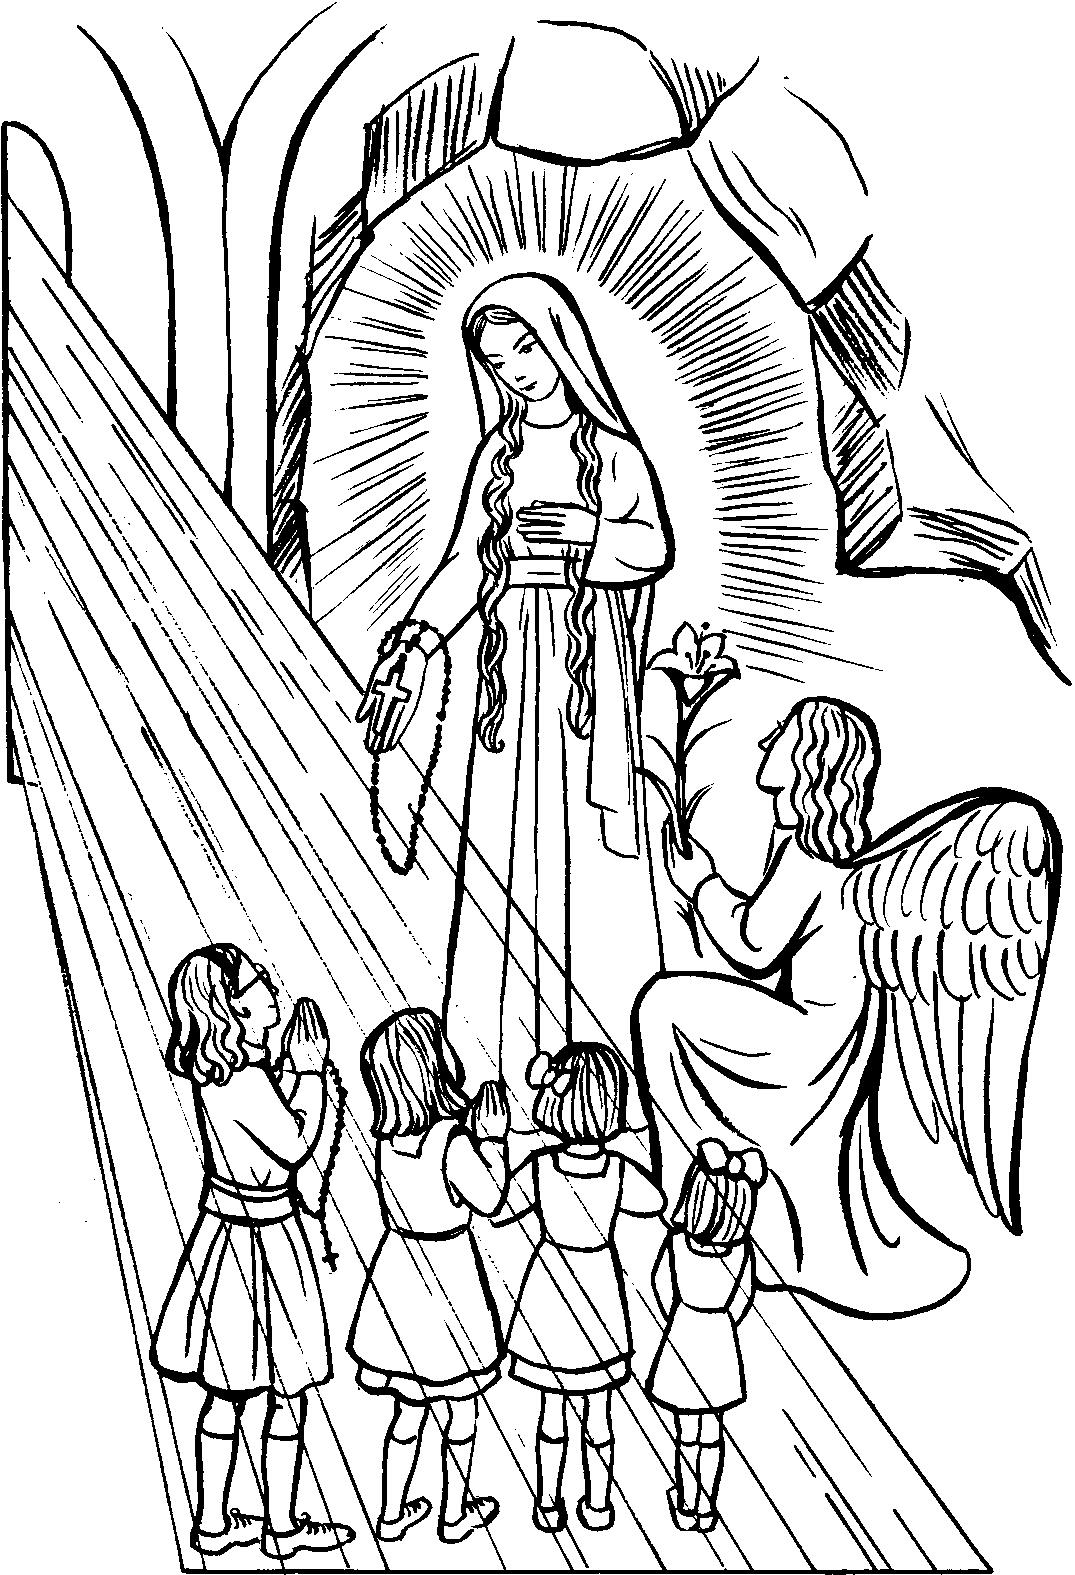 Rosary Coloring Page Rosary Drawing Pictures At Getdrawings Free For